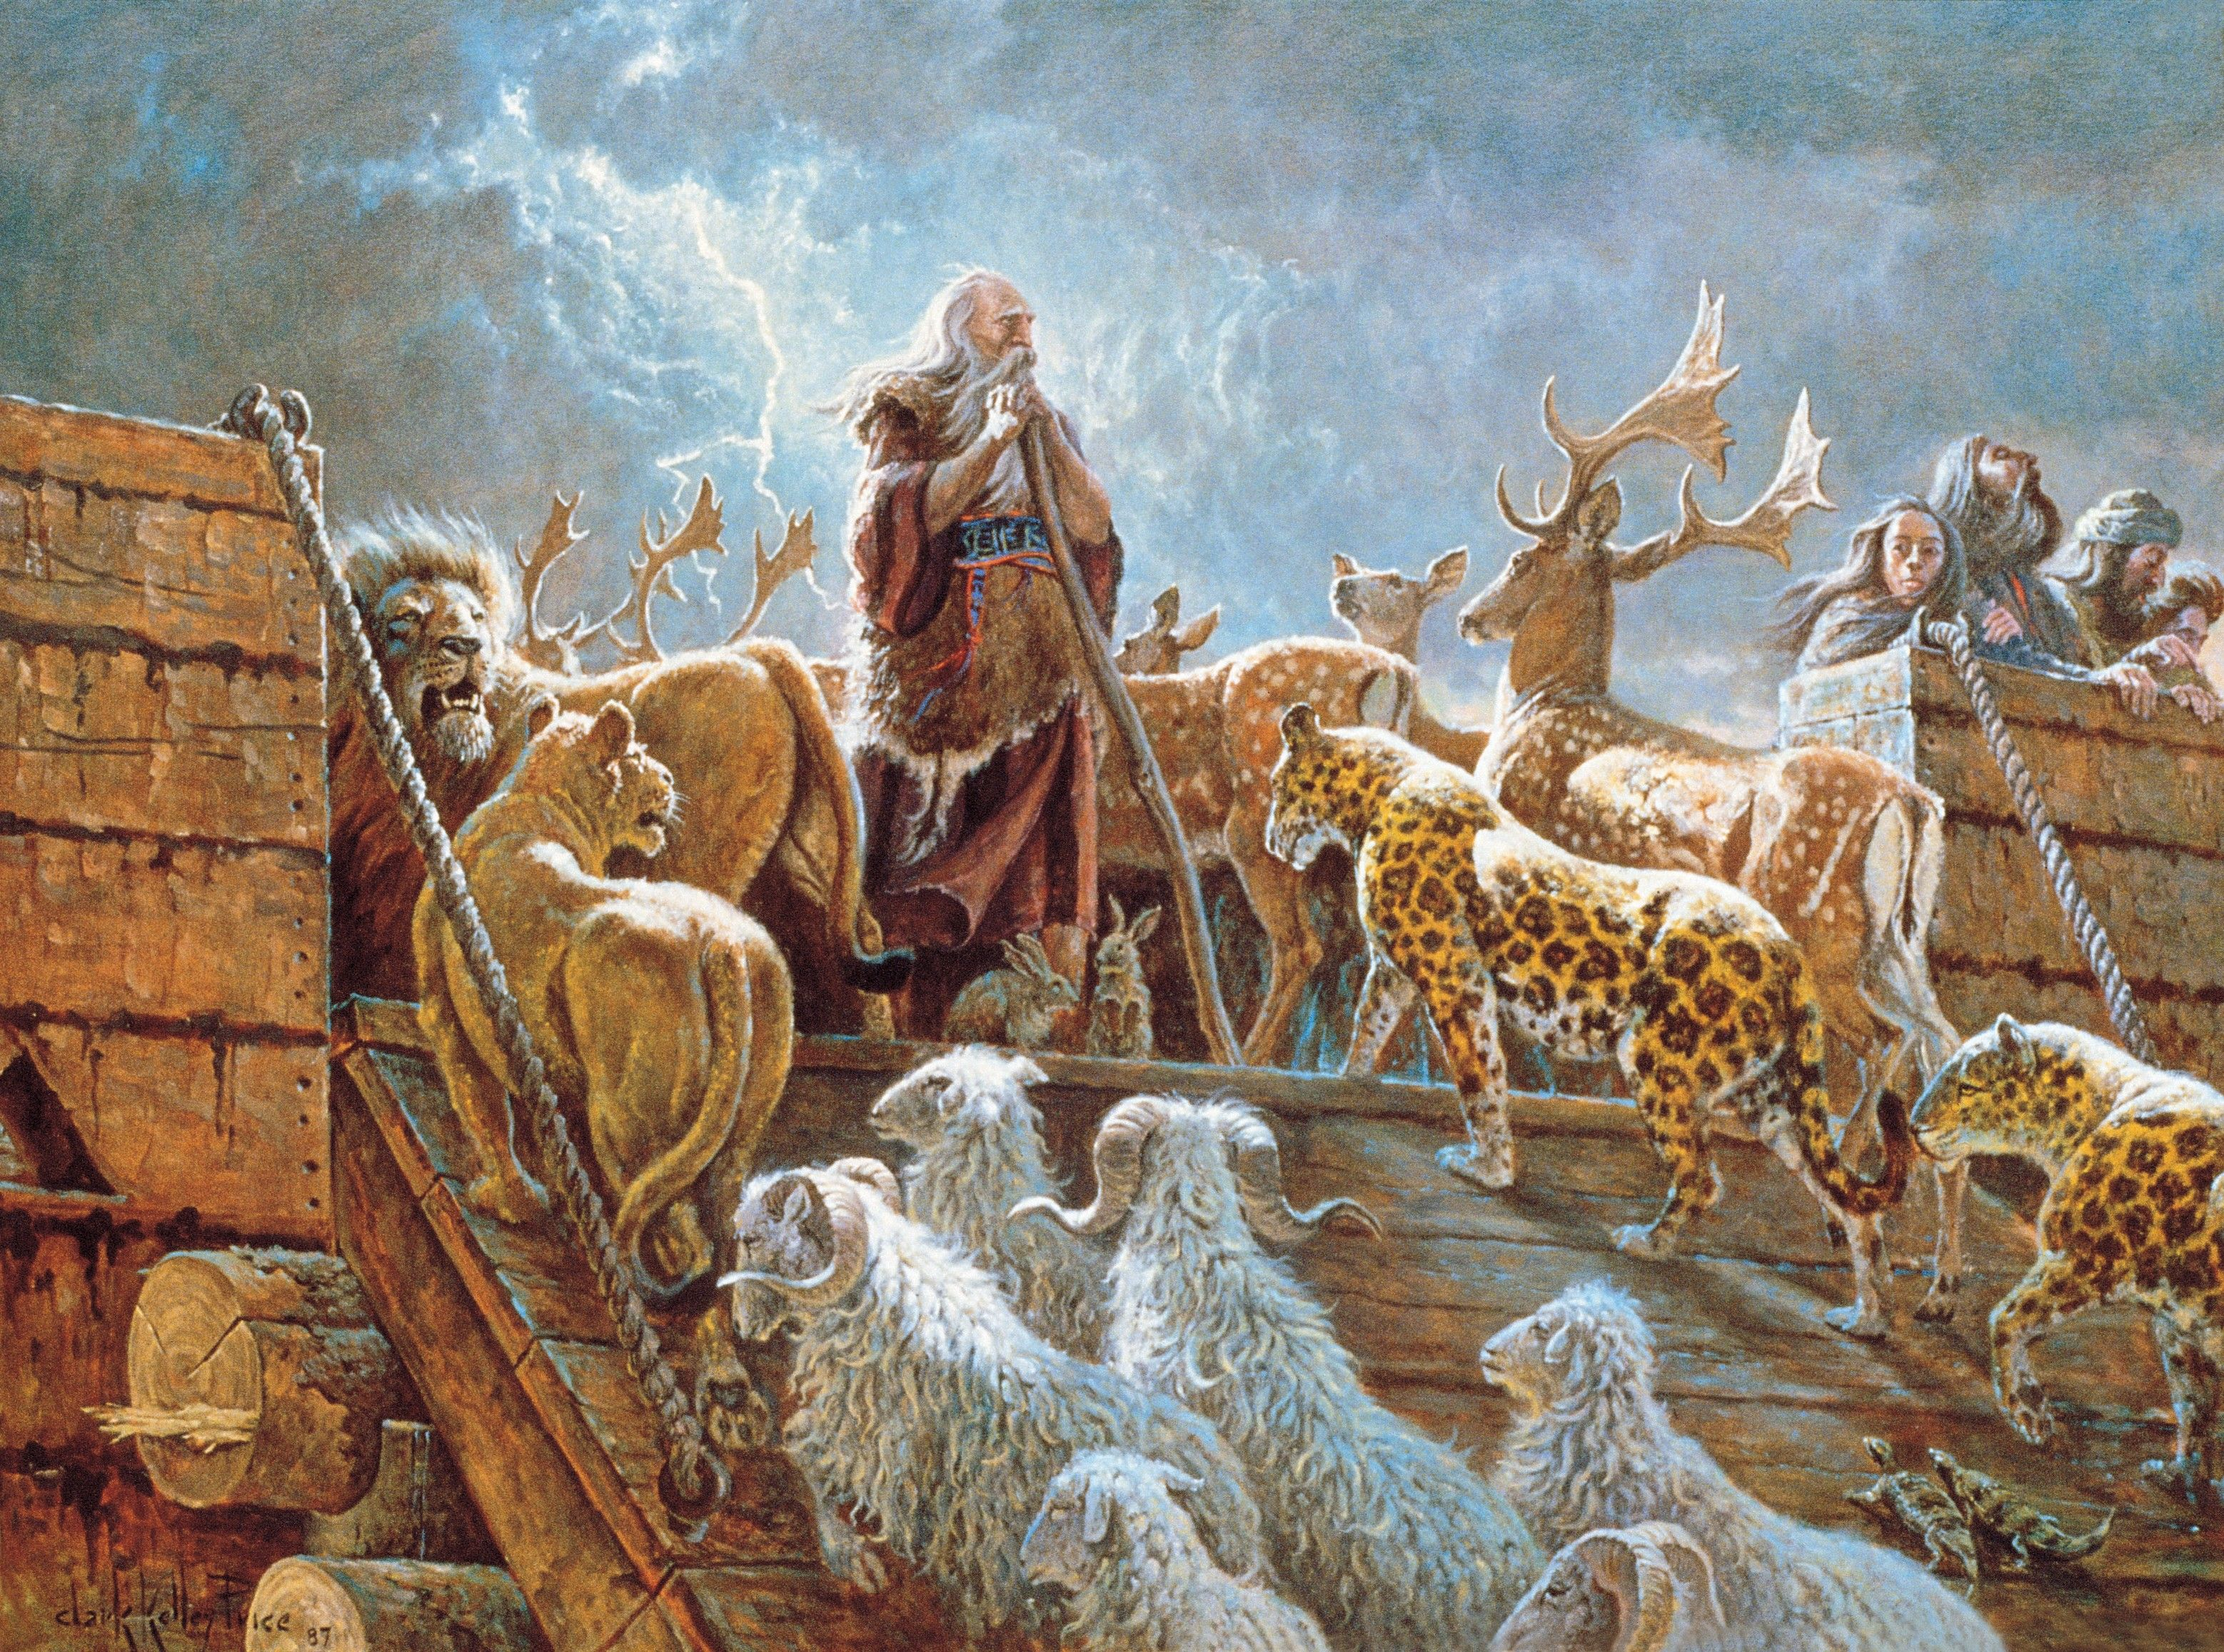 Noah and the Ark with Animals (The Lord Fulfilleth All His Words), by Clark Kelley Price; GAK 103; GAB 8; Primary manual 1-30; Primary manual 2-72; Primary manual 6-08; Genesis 6:12–22; 7:2–23; 8